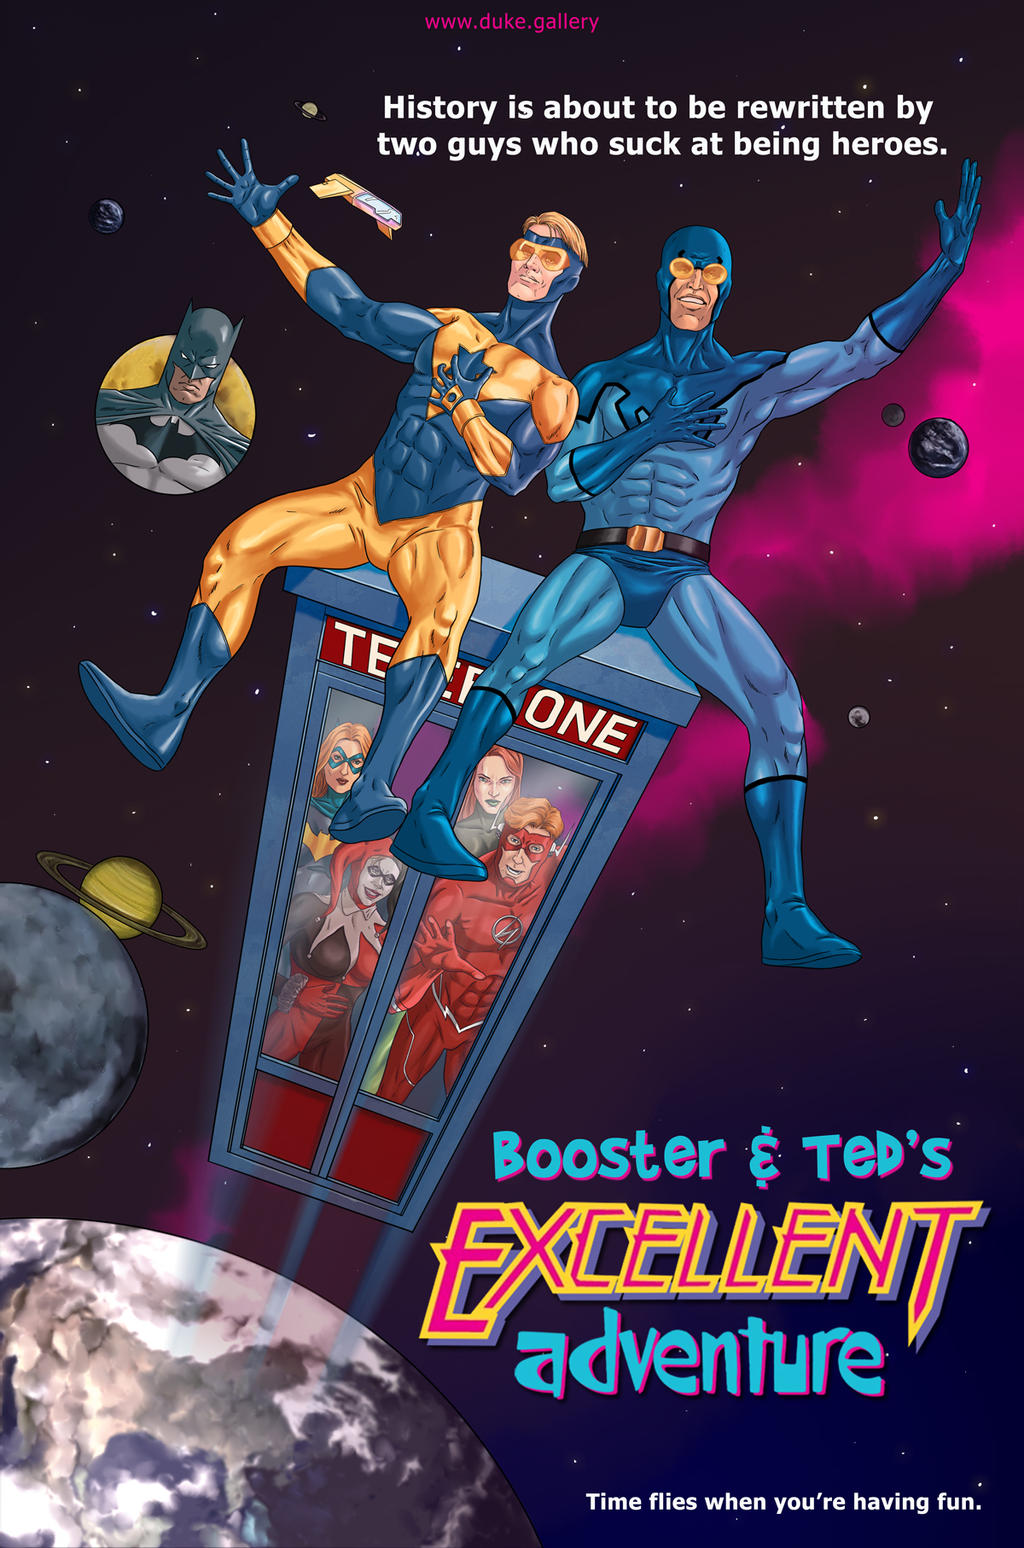 Booster and Teds Excellent Adventure